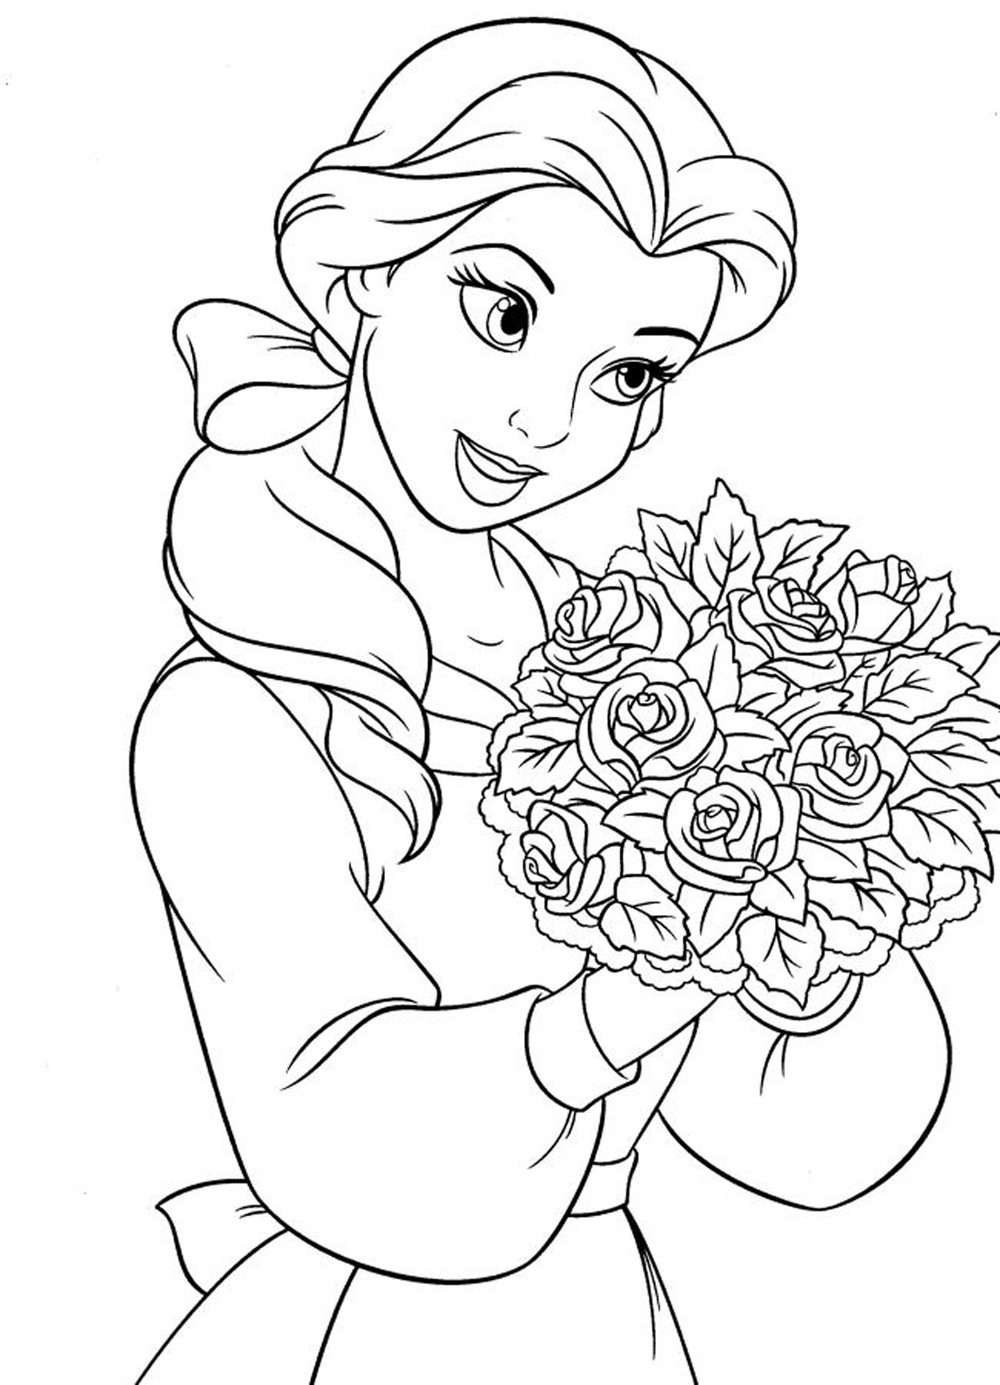 disney princess tiana coloring pages - Coloringbook Pages